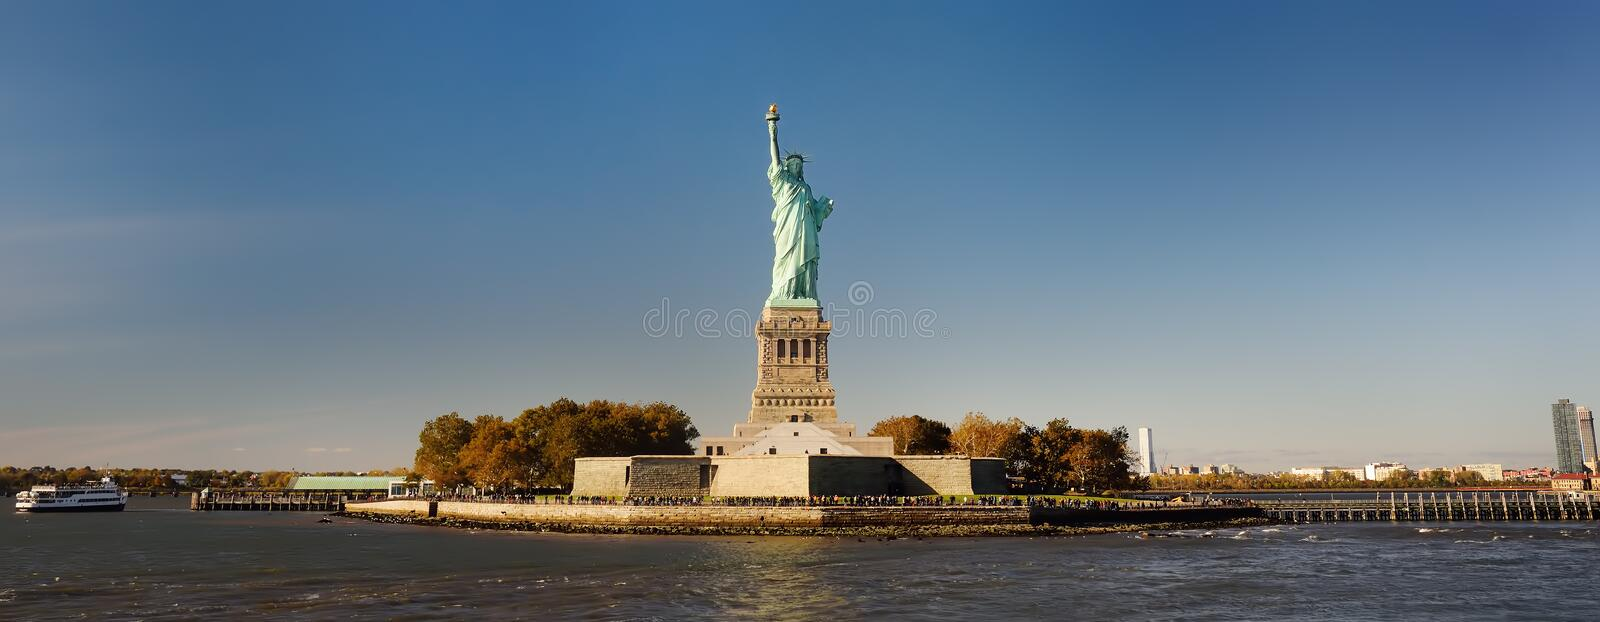 Panorama of island of Liberty with statue of Liberty seen from the ferry in the Hudson river. Symbol of the New york stock photo